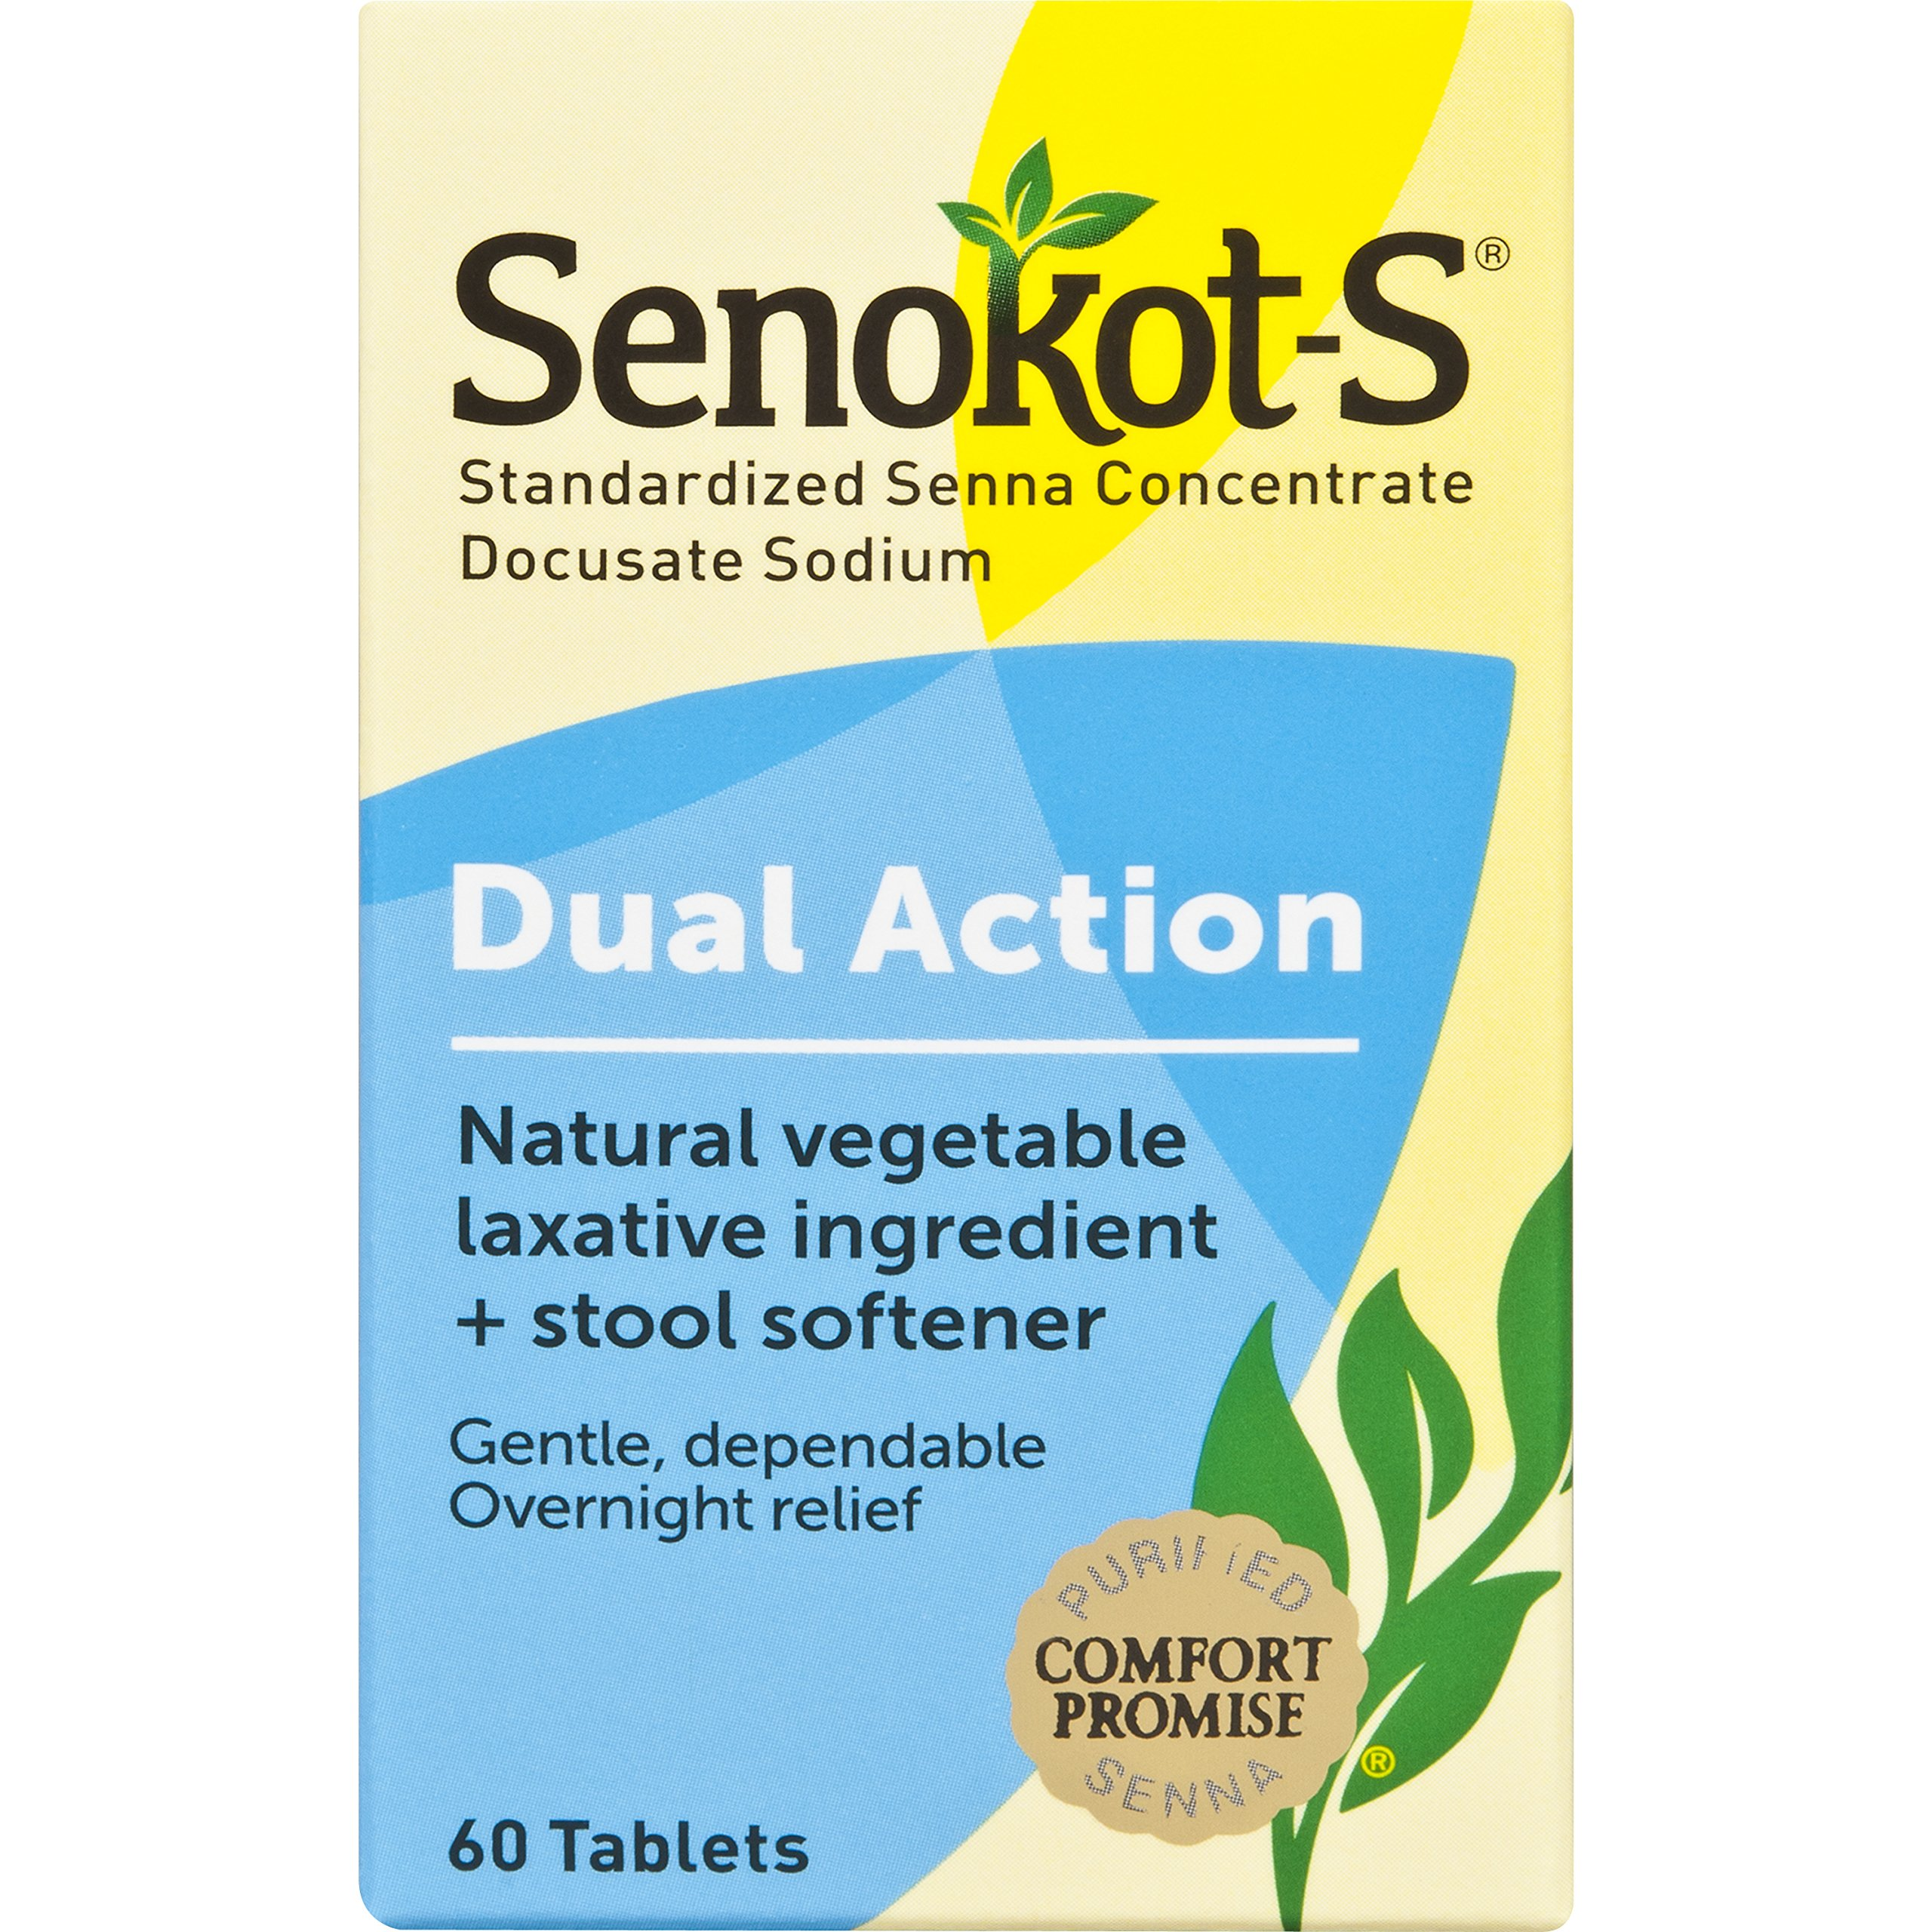 Senokot-S Dual Action 60 Tablets, Natural Vegetable Laxative Ingredient Plus Stool Softener Tablets, Gentle Dependable Overnight Relief of Occasional constipation by Senokot